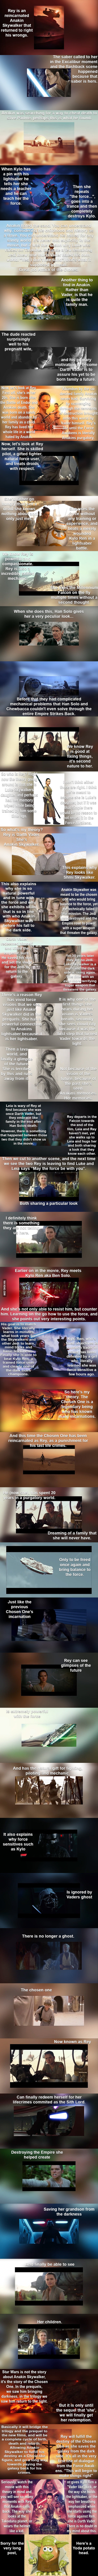 I've got a cool theory for you guys, what if Rey is not who she thinks she is? *Warning, SPOILERS! Duh..*